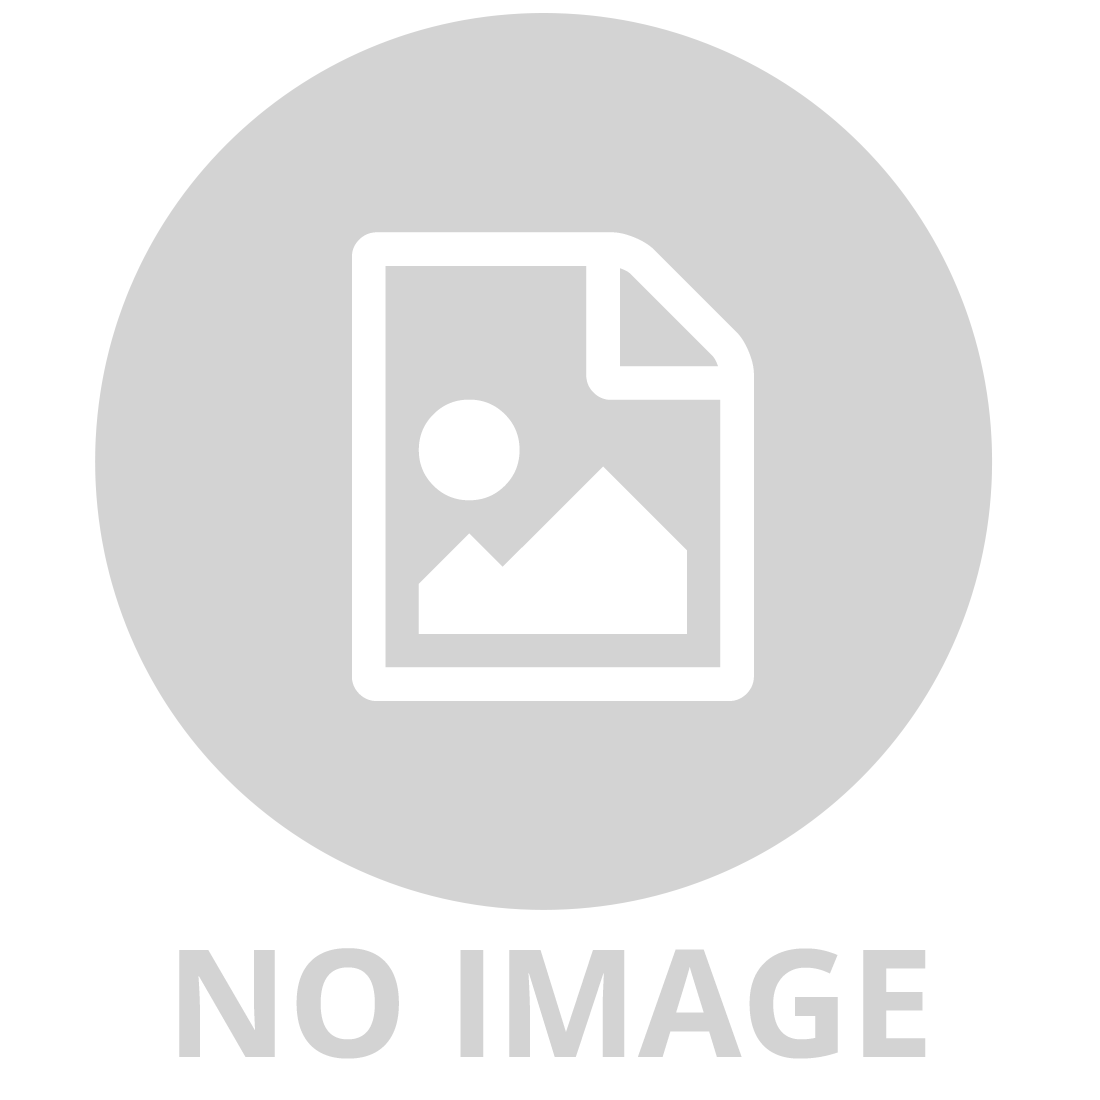 FISHER PRICE - SMART STAGES TABLET - BLUE